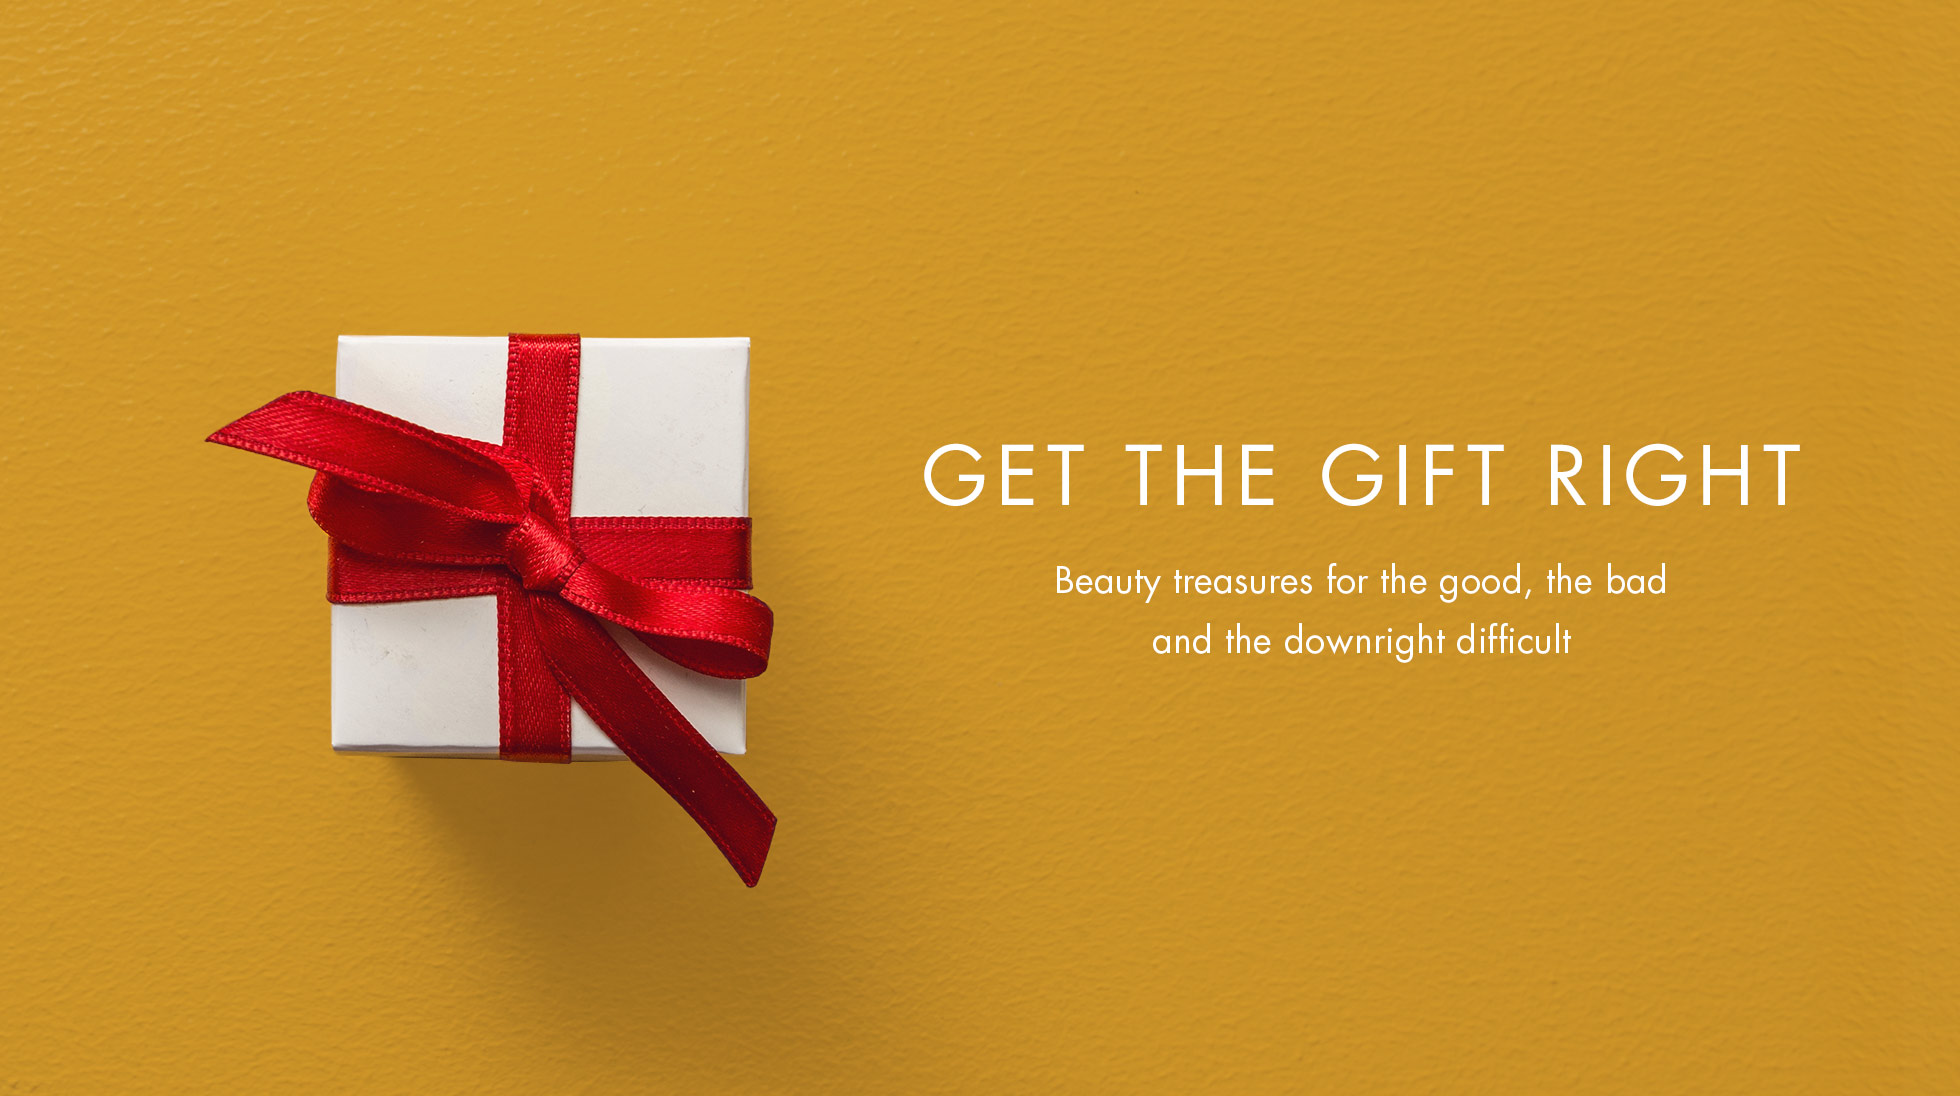 GET THE RIGHT GIFT